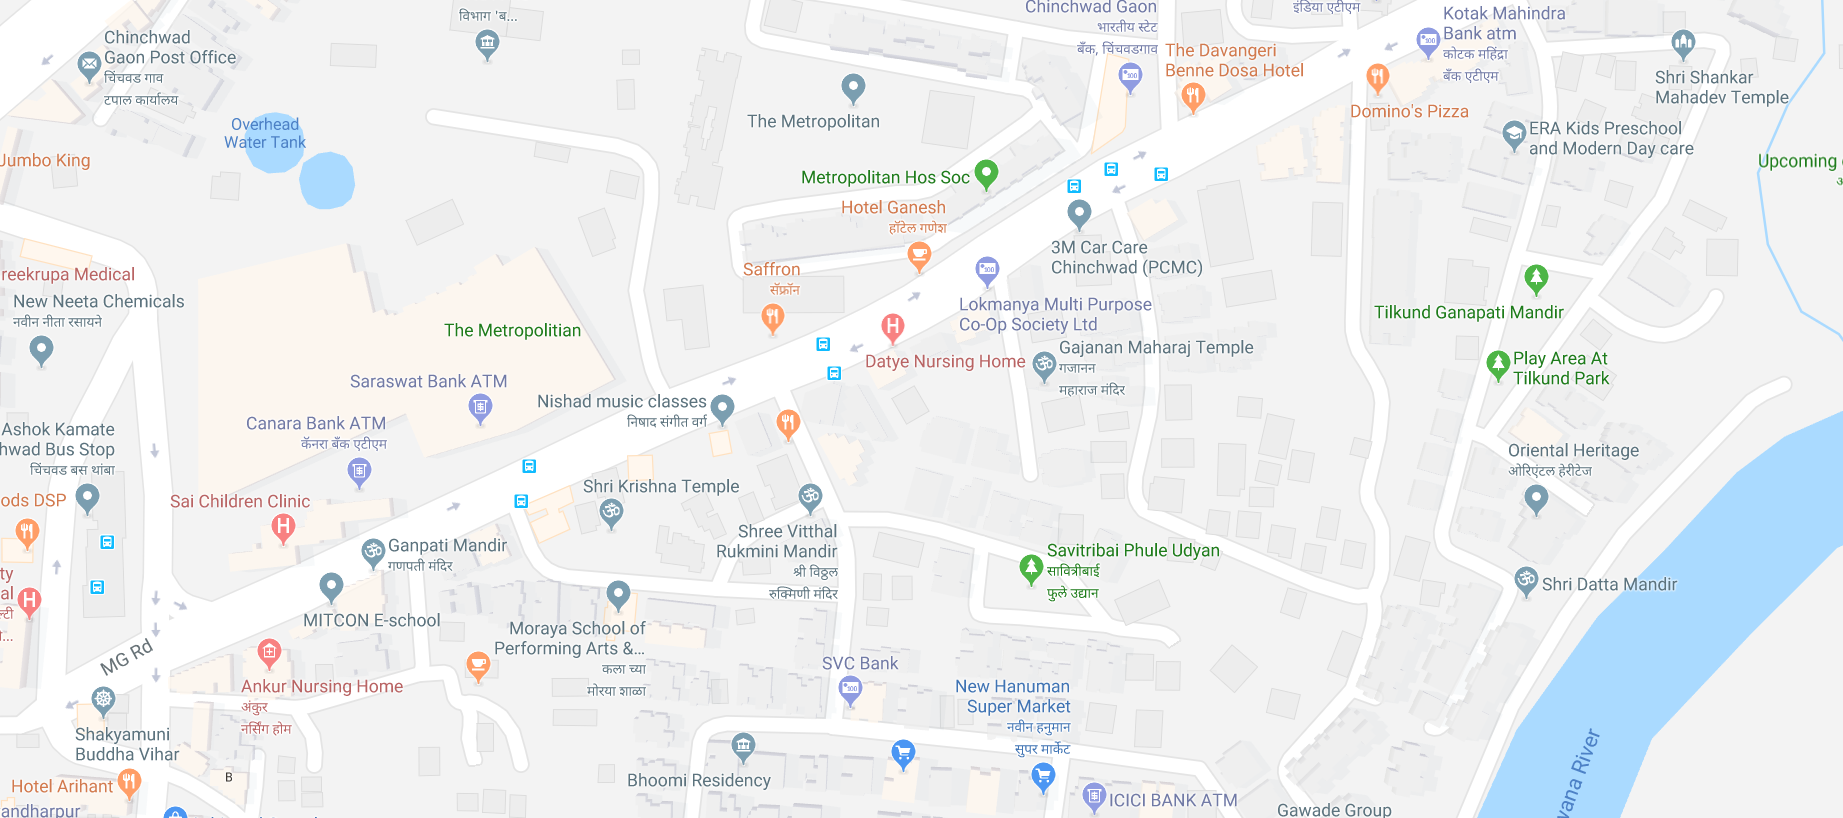 Maps Of Pune I want Pune District Map scale of 50m, how can i get that full map